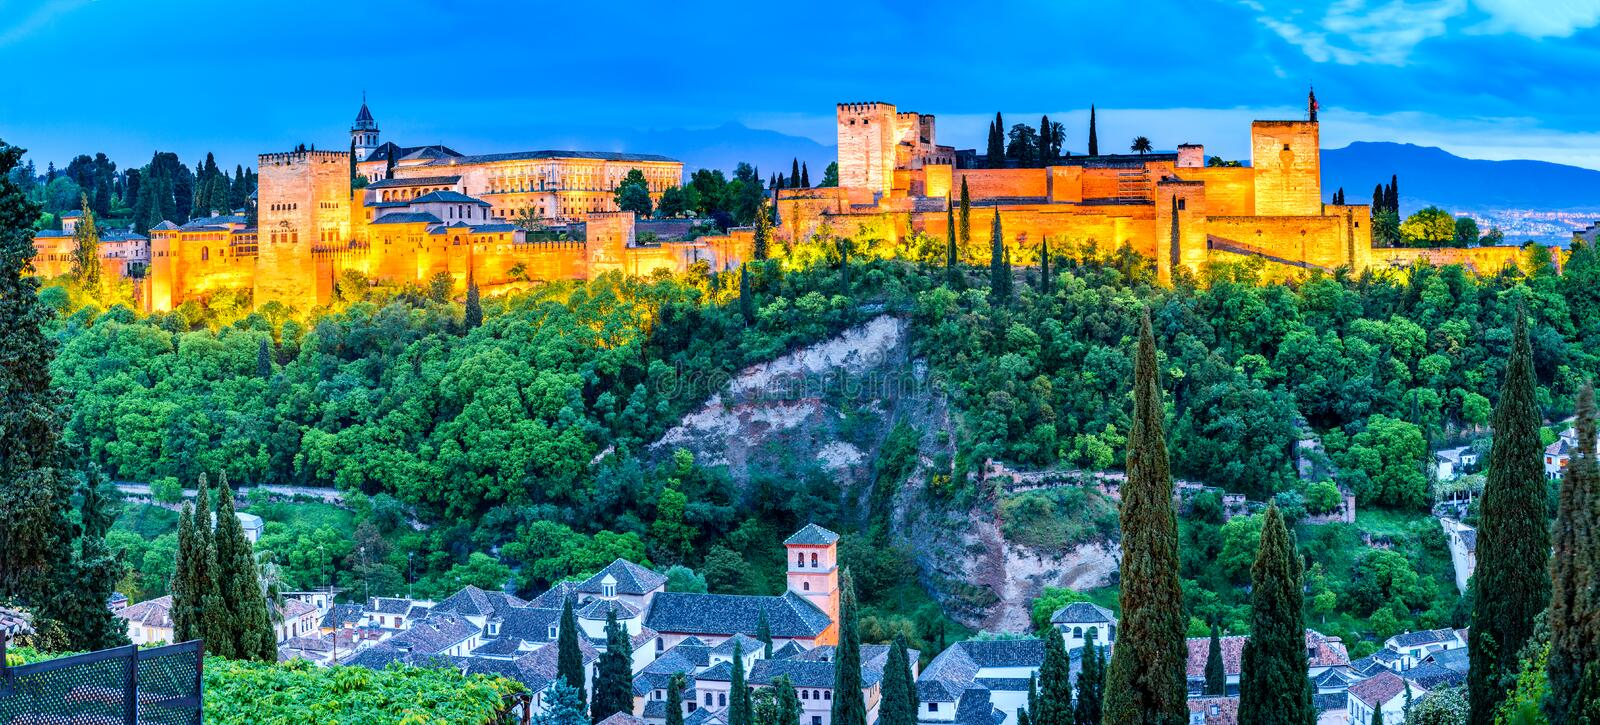 Granada - Alhambra, Andalusia, Spain royalty free stock images